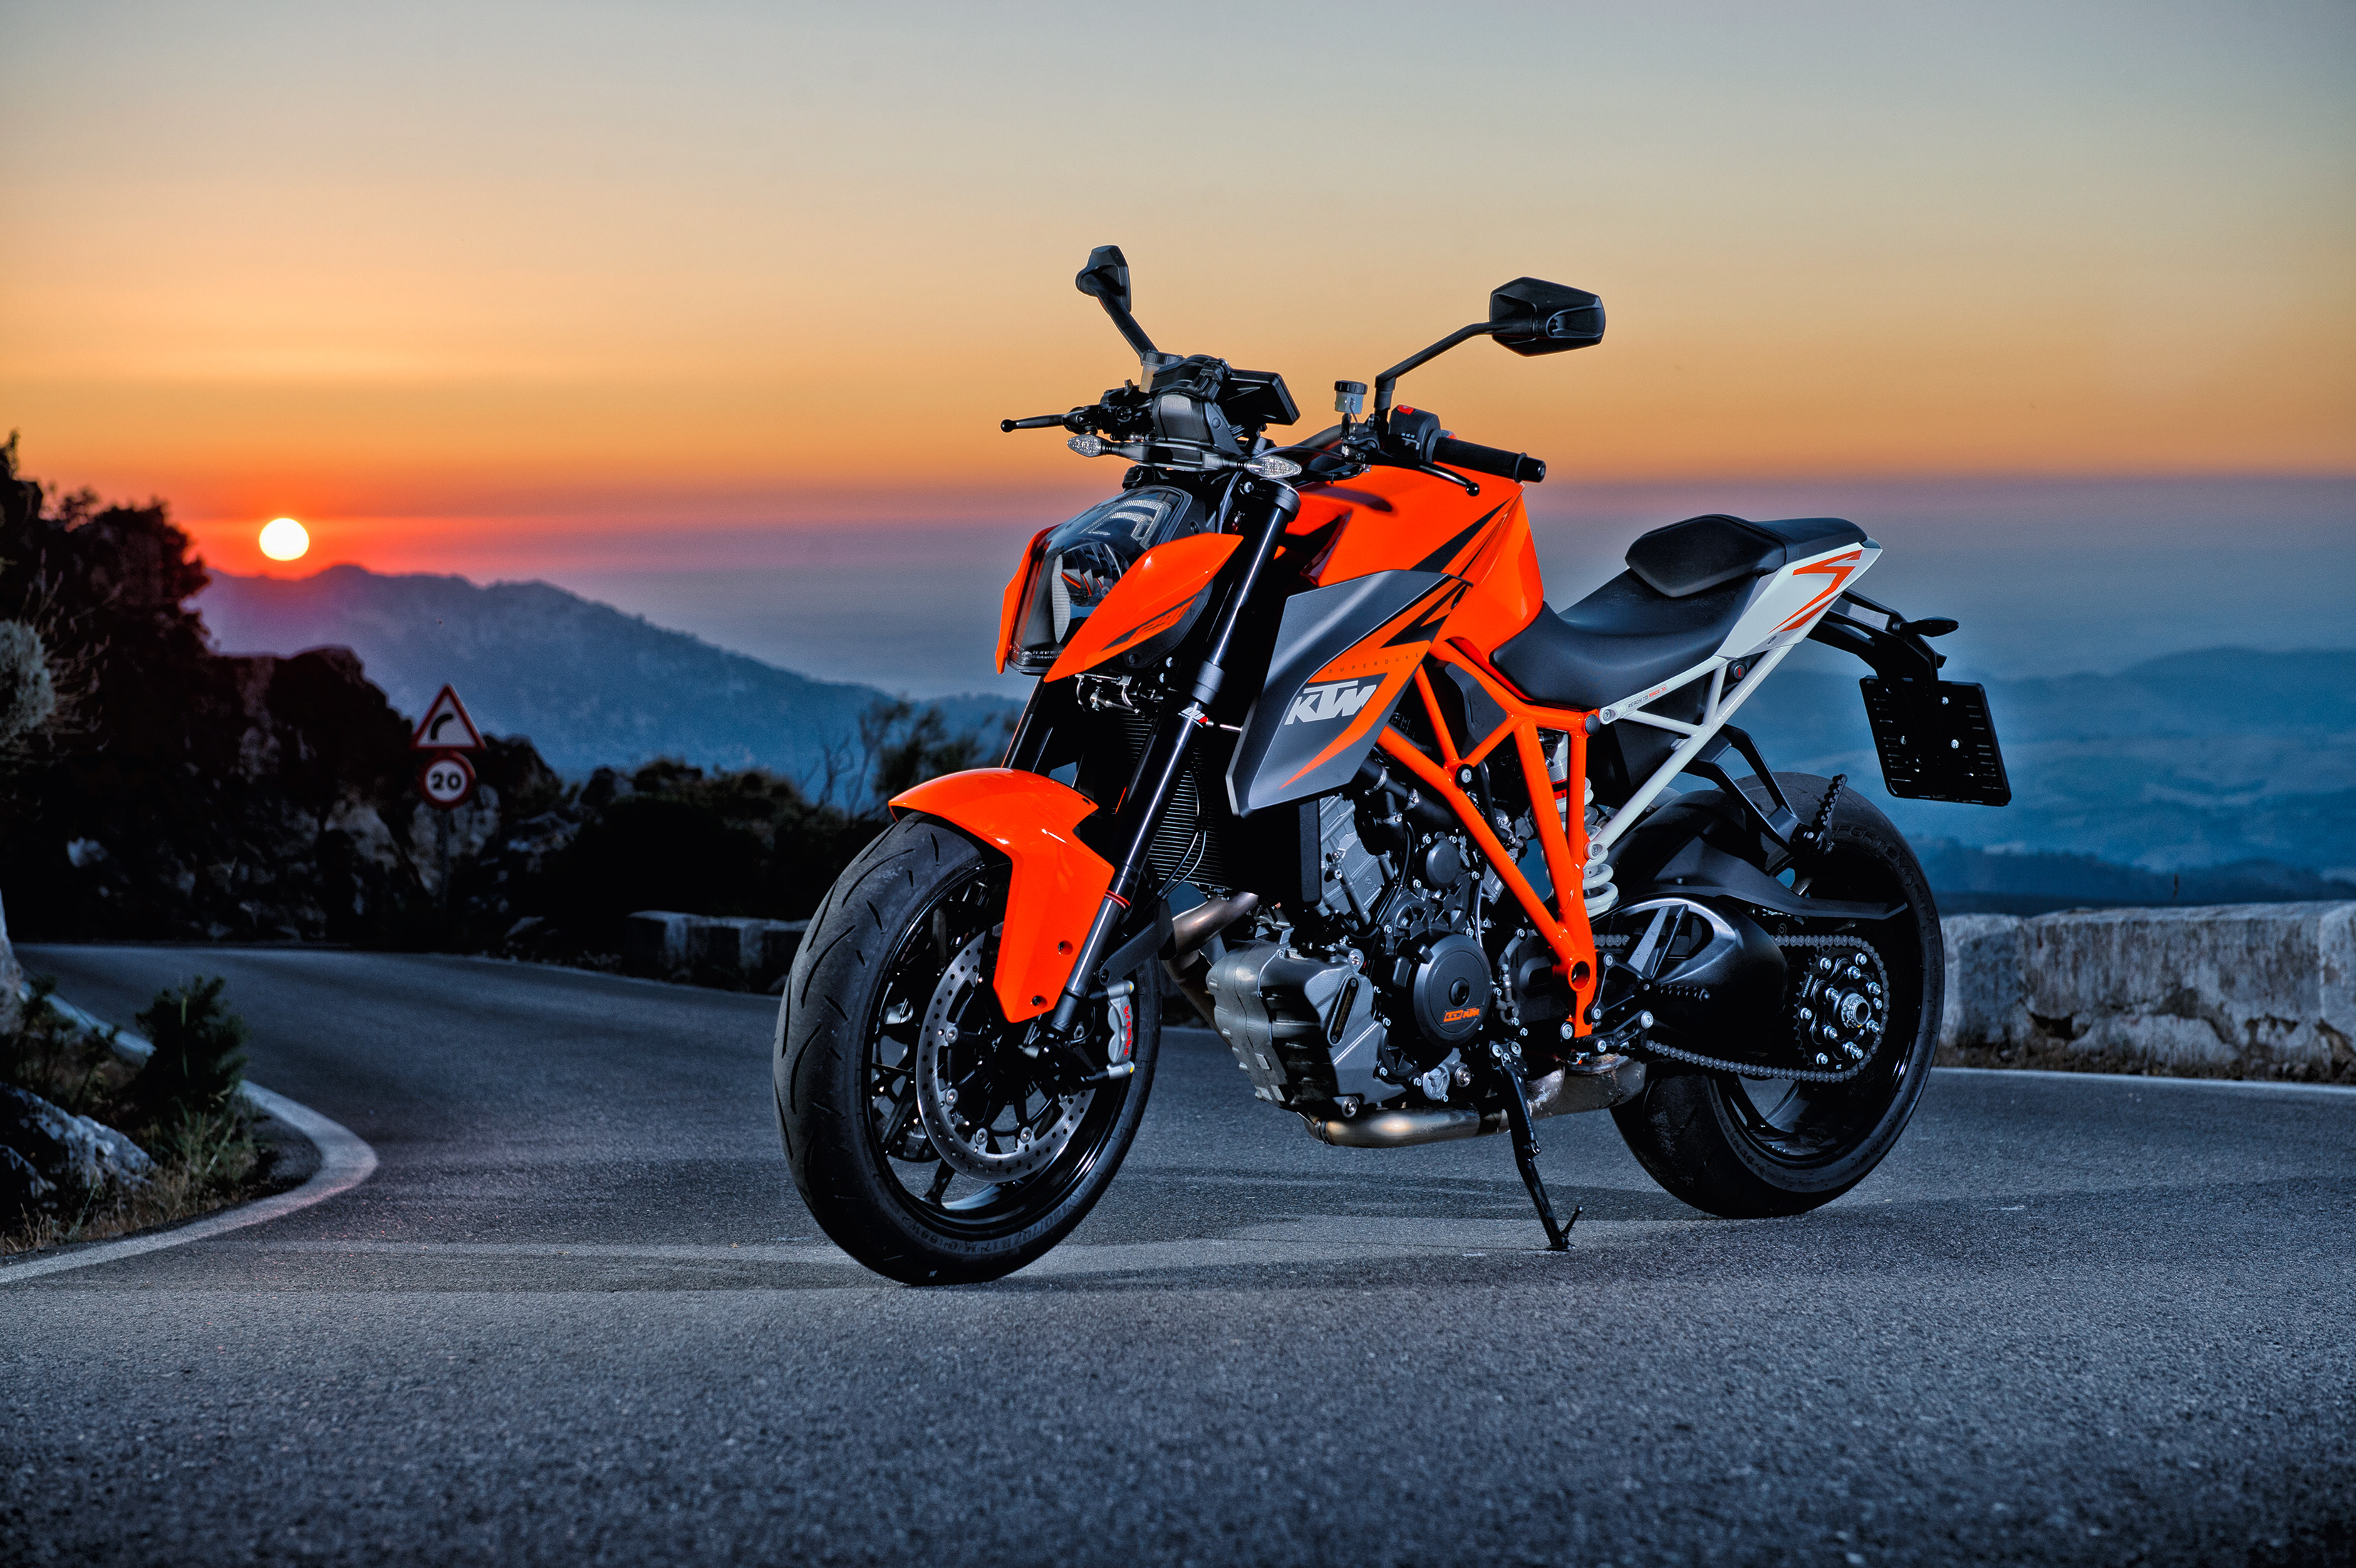 145858 download wallpaper Motorcycles, Sports, Motorcycle, Ktm 1290 Super Duke R screensavers and pictures for free